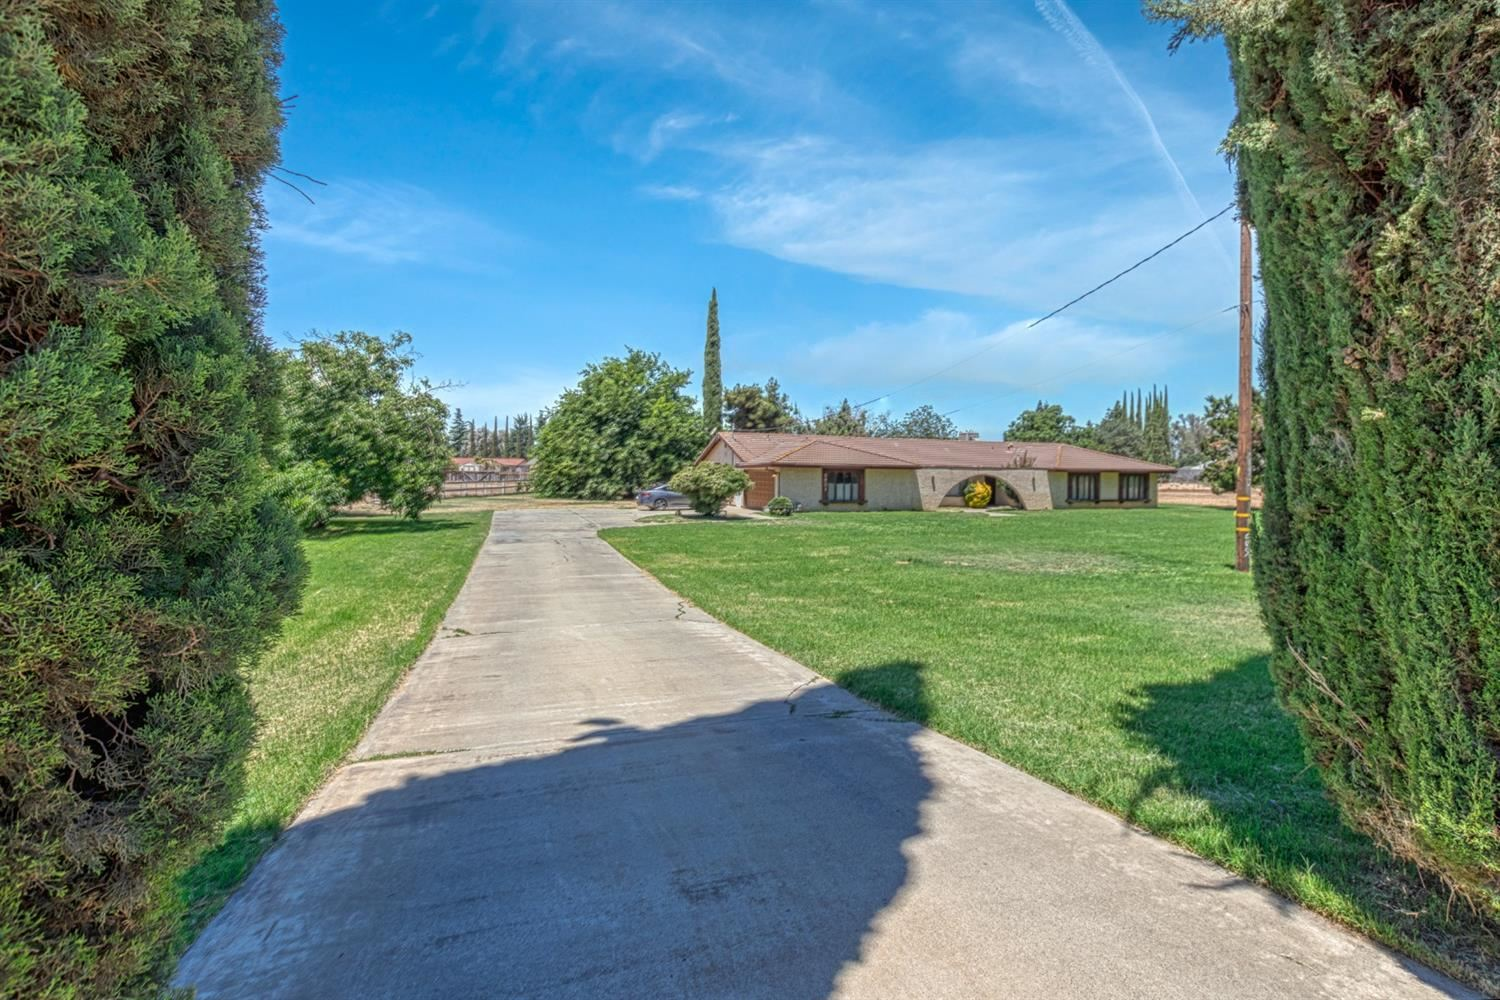 Photo of 2821 Buhach Road, Atwater, CA 95301 (MLS # 221071389)